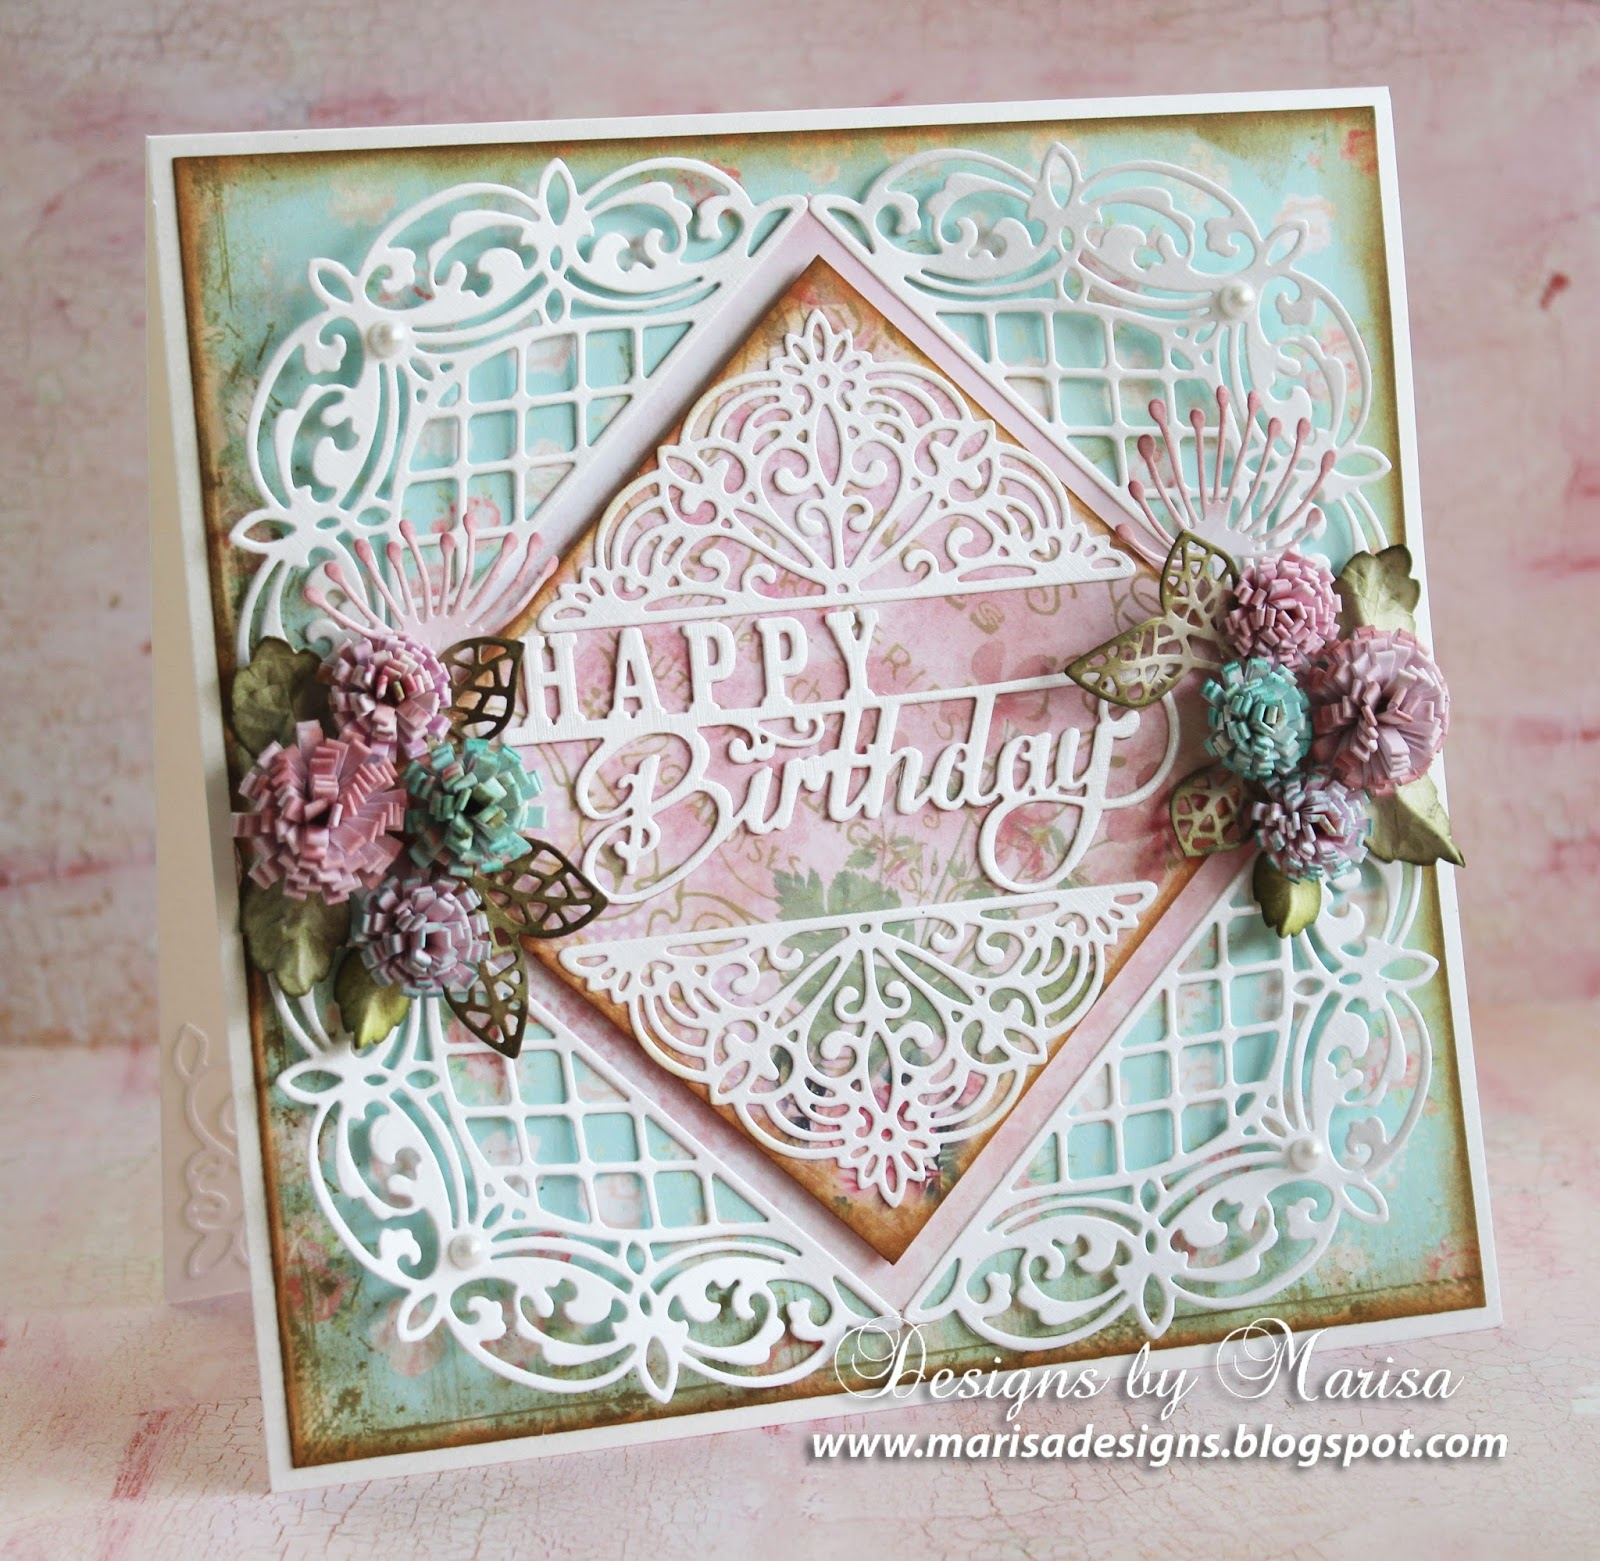 happy birthday dies for card making ; happy-birthday-dies-for-card-making-4